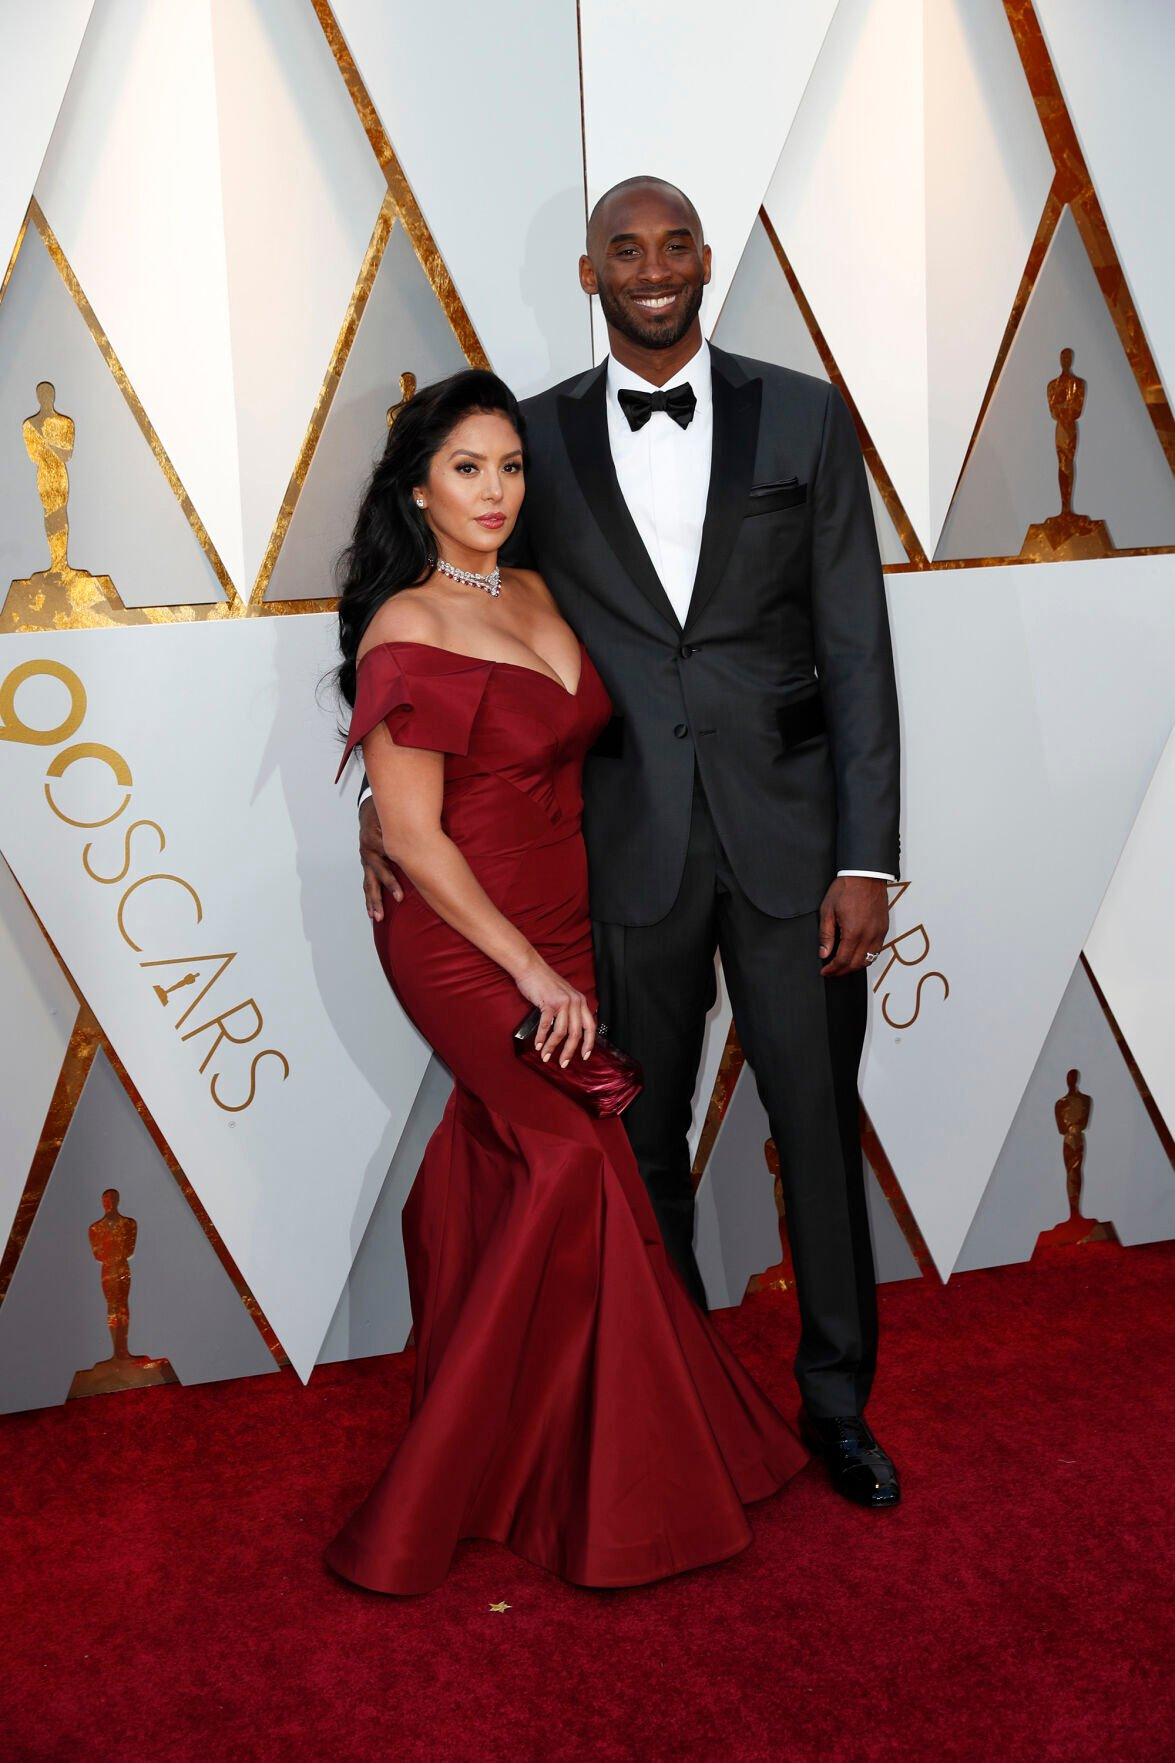 Kobe Bryant and Vanessa Laine Bryant arrive at the 90th Academy Awards on Sunday, March 4, 2018, at the Dolby Theatre at Hollywood& Highland Center in Hollywood.